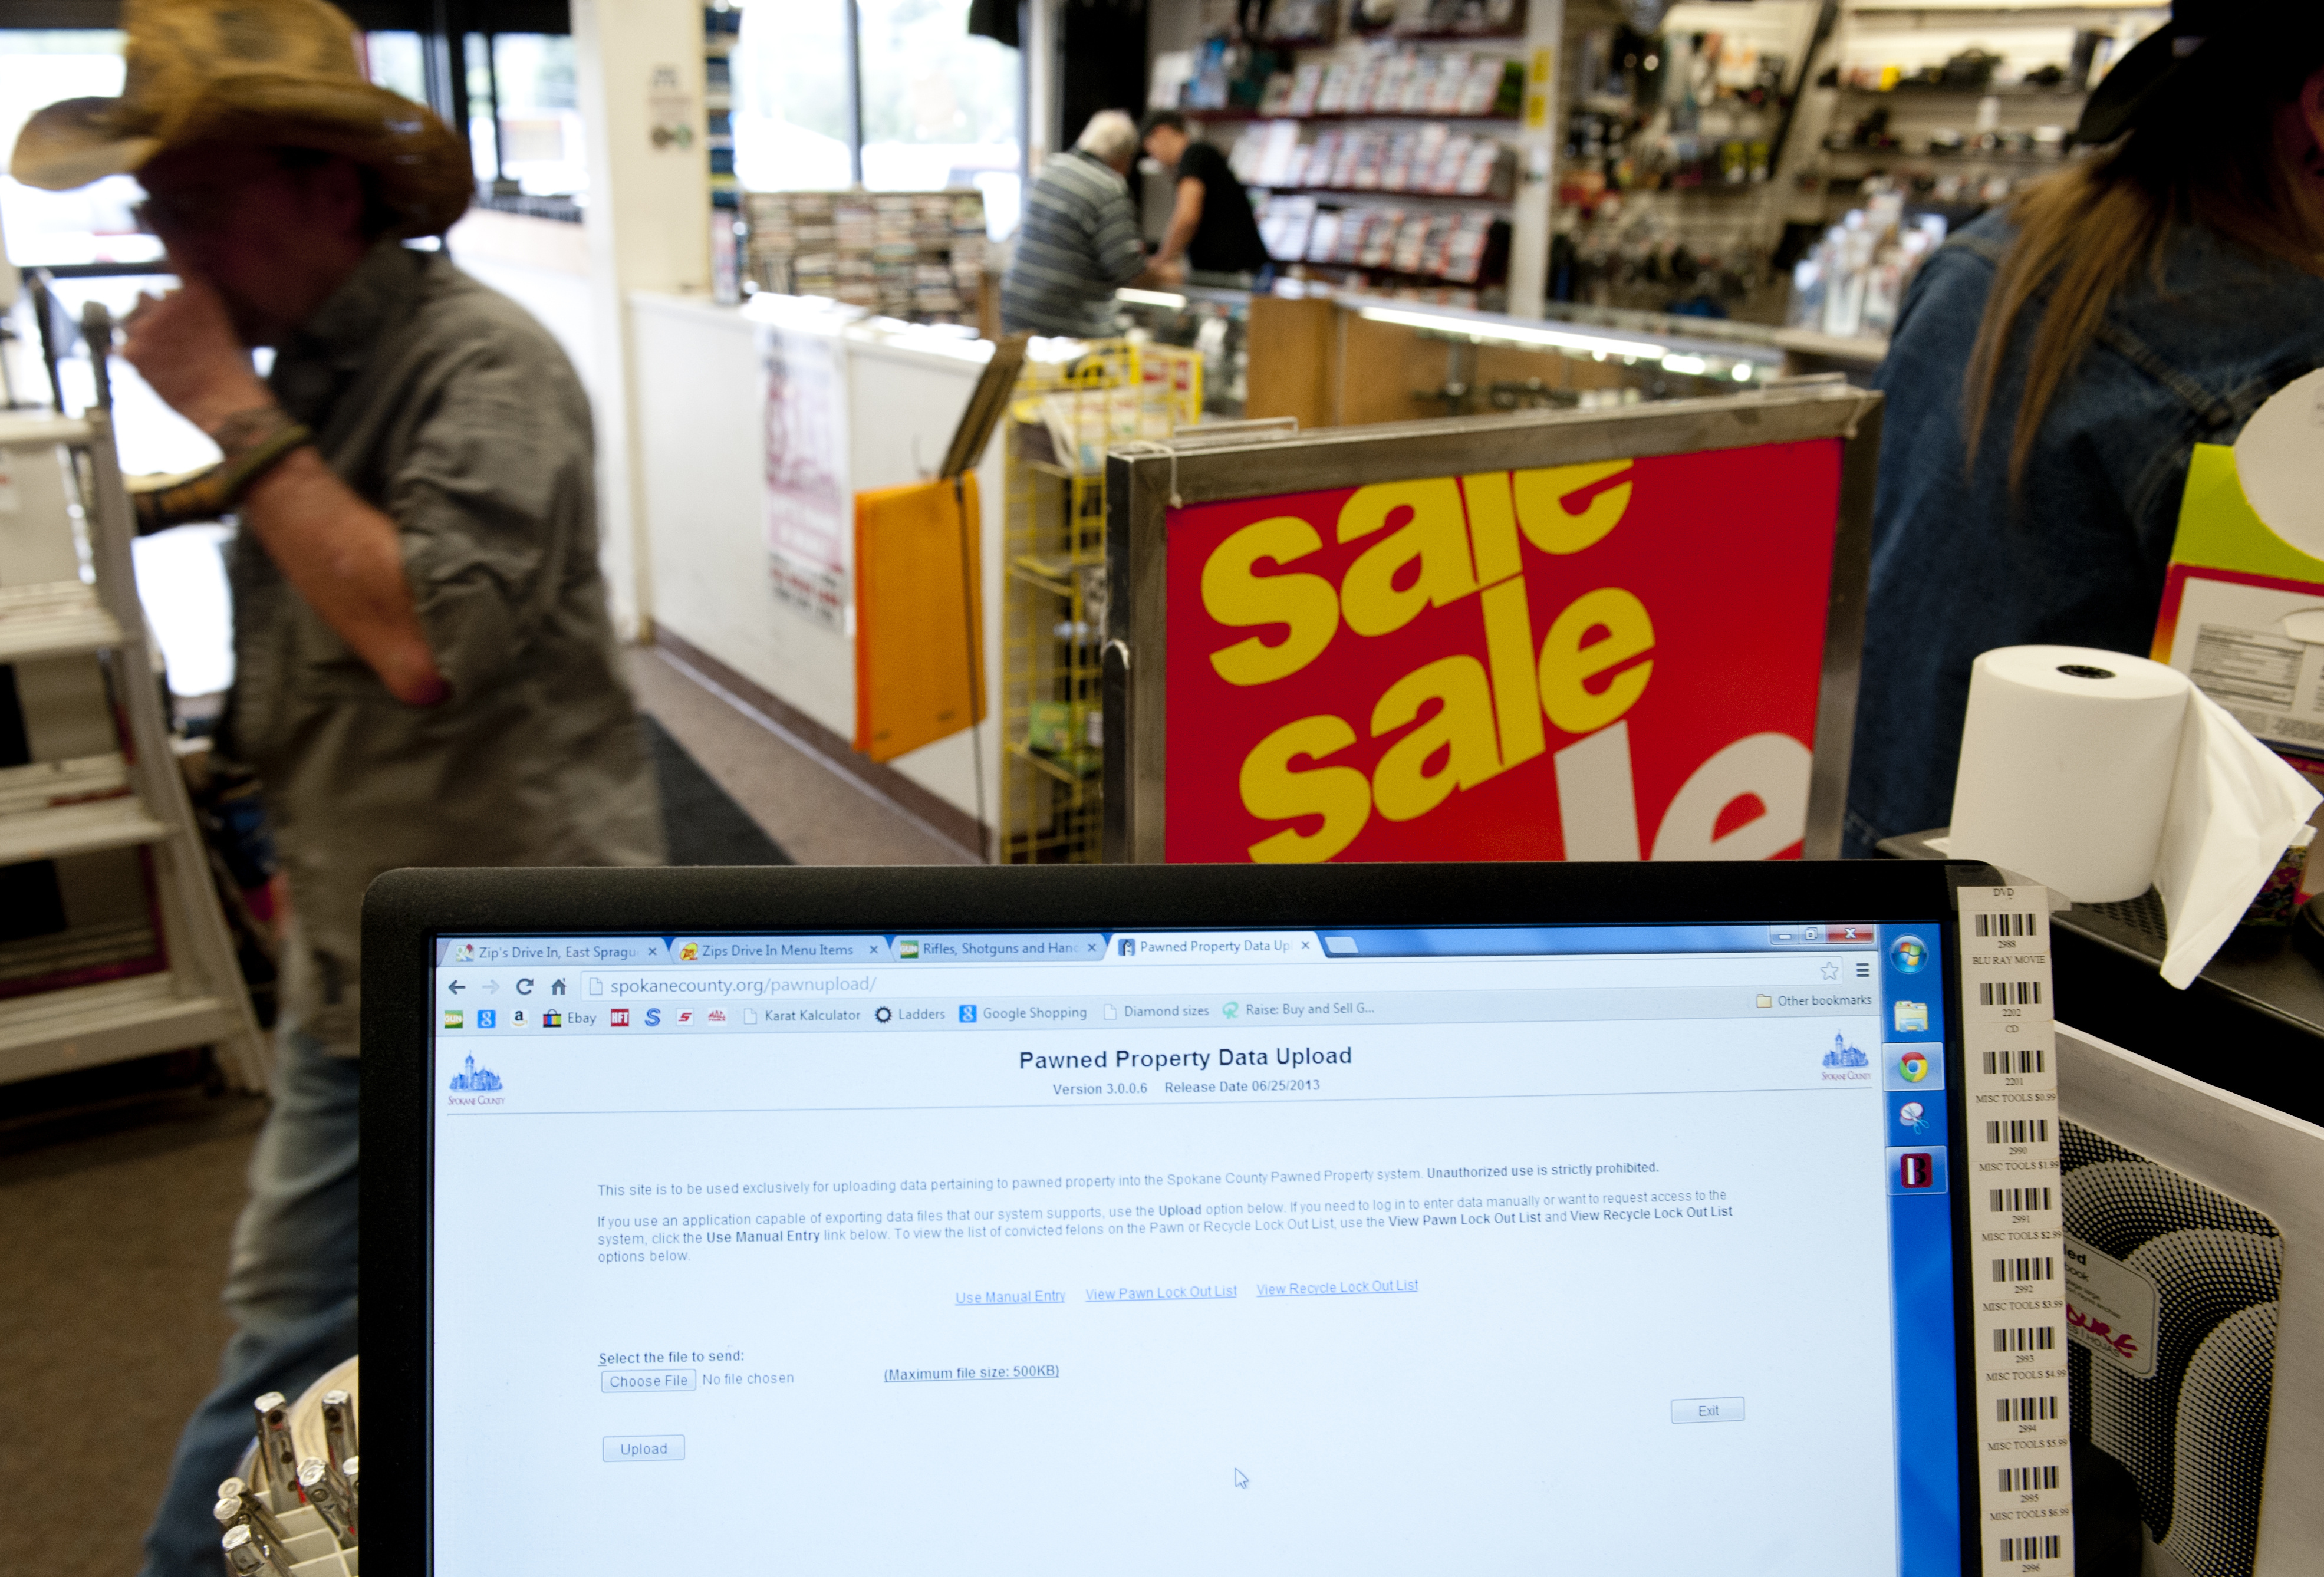 Many businesses unaware of changes in item-tracking law